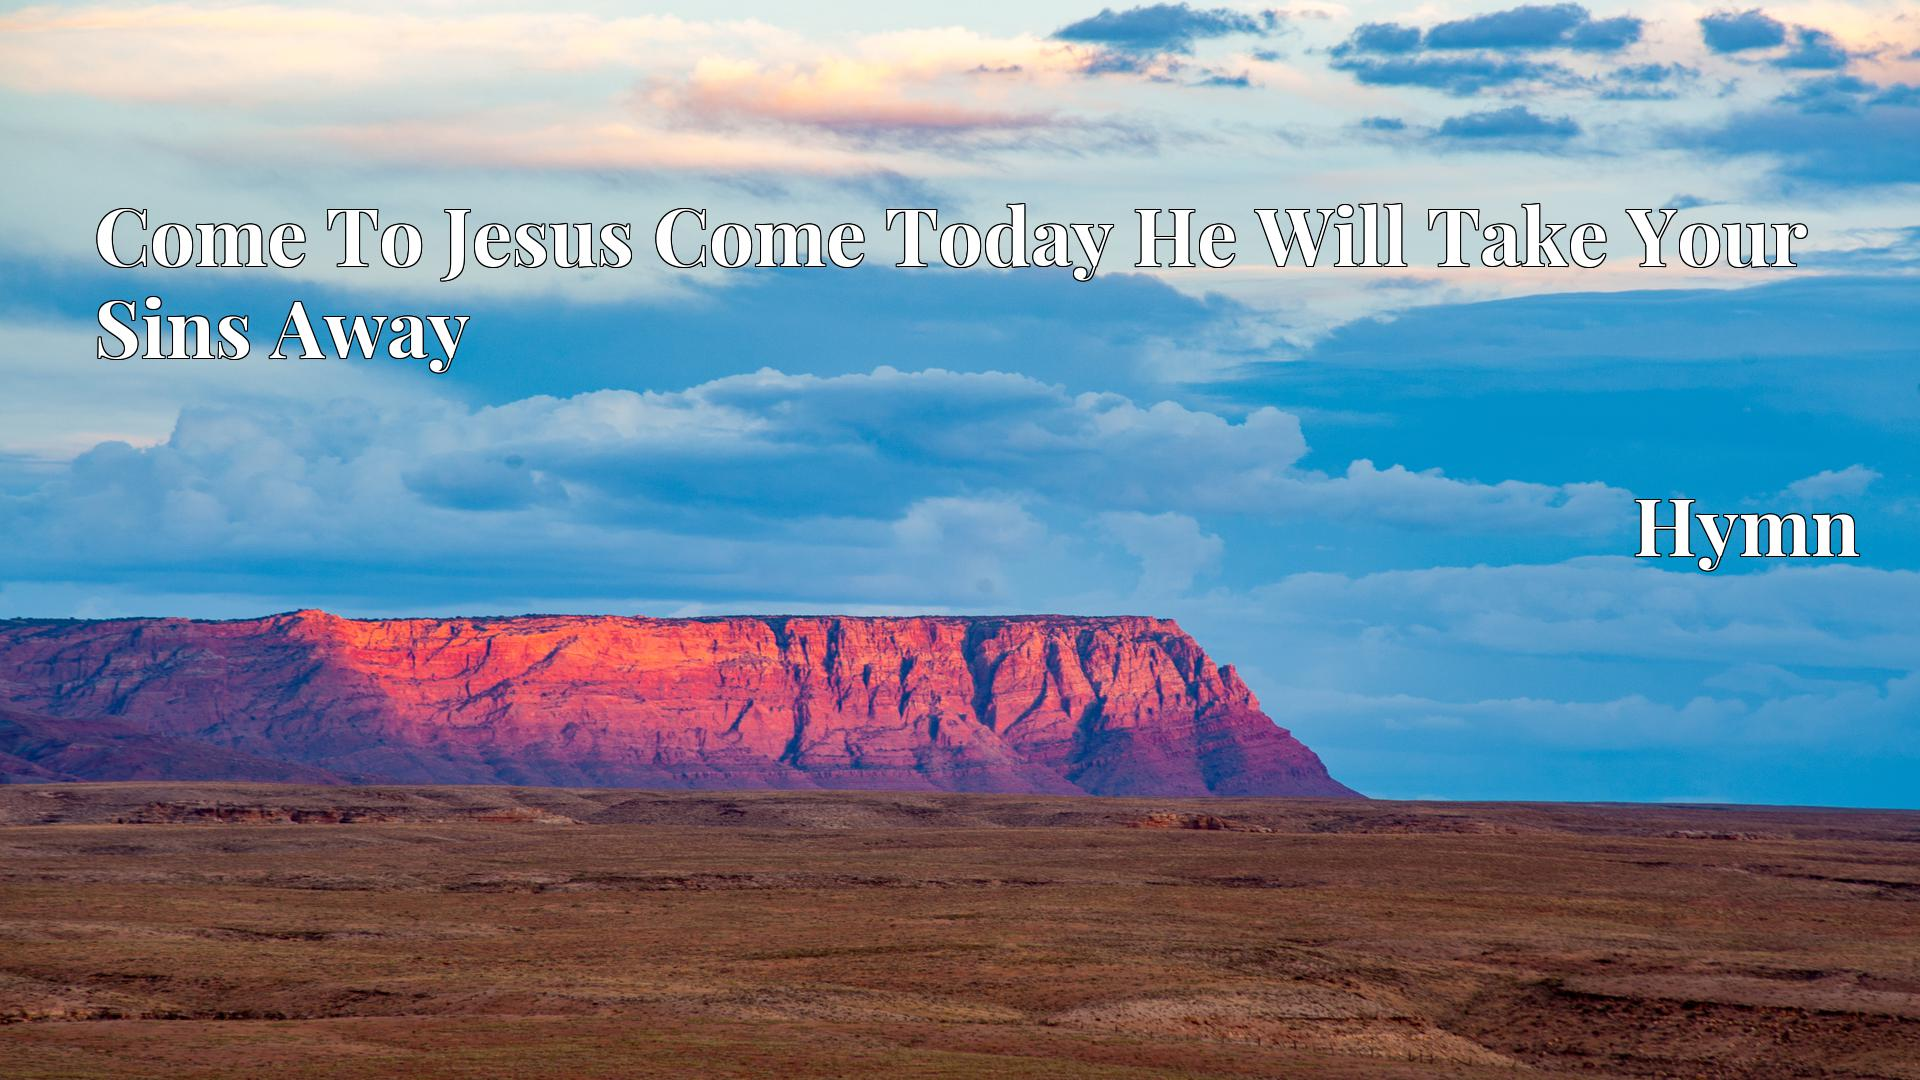 Come To Jesus Come Today He Will Take Your Sins Away - Hymn